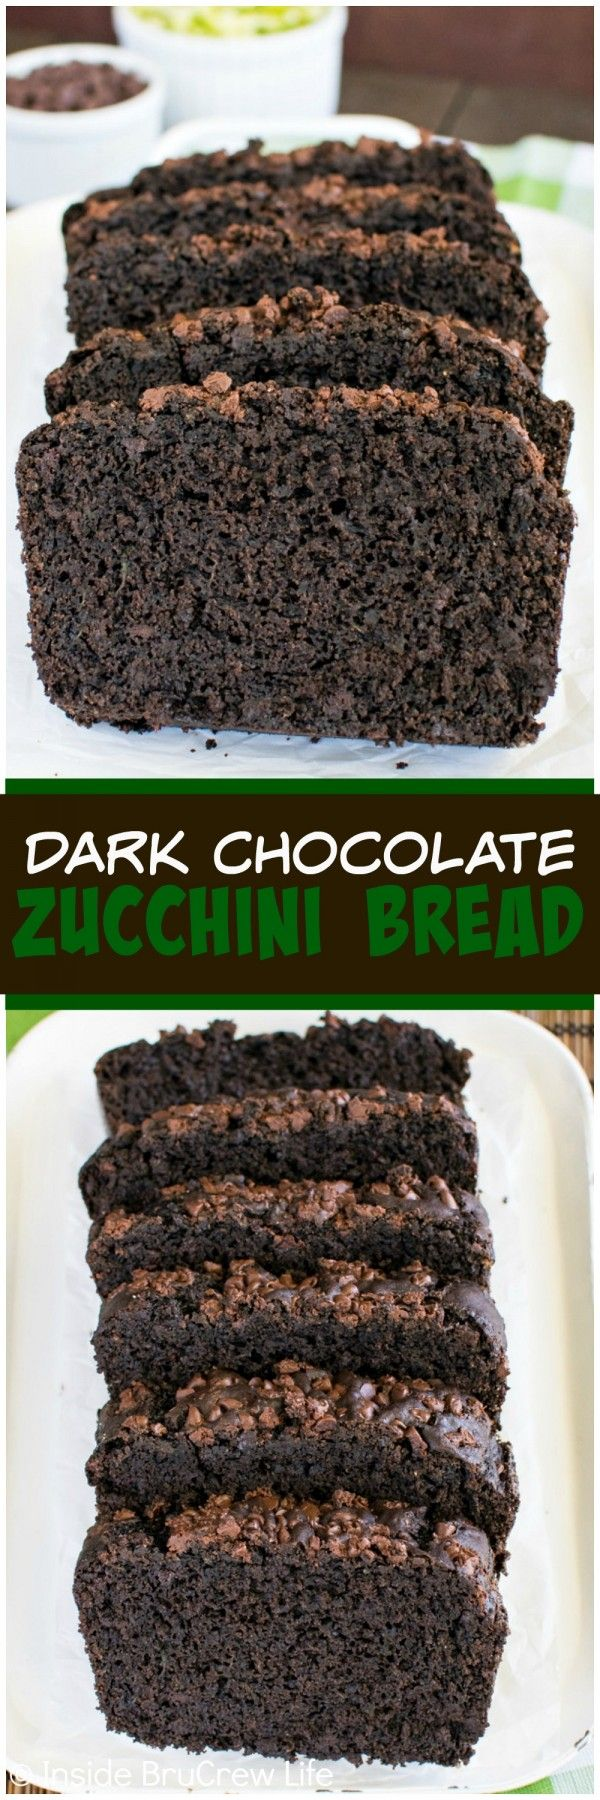 Dark Chocolate Zucchini Bread - two times the chocolate makes this sweet bread taste out of this world!  Awesome breakfast recipe!